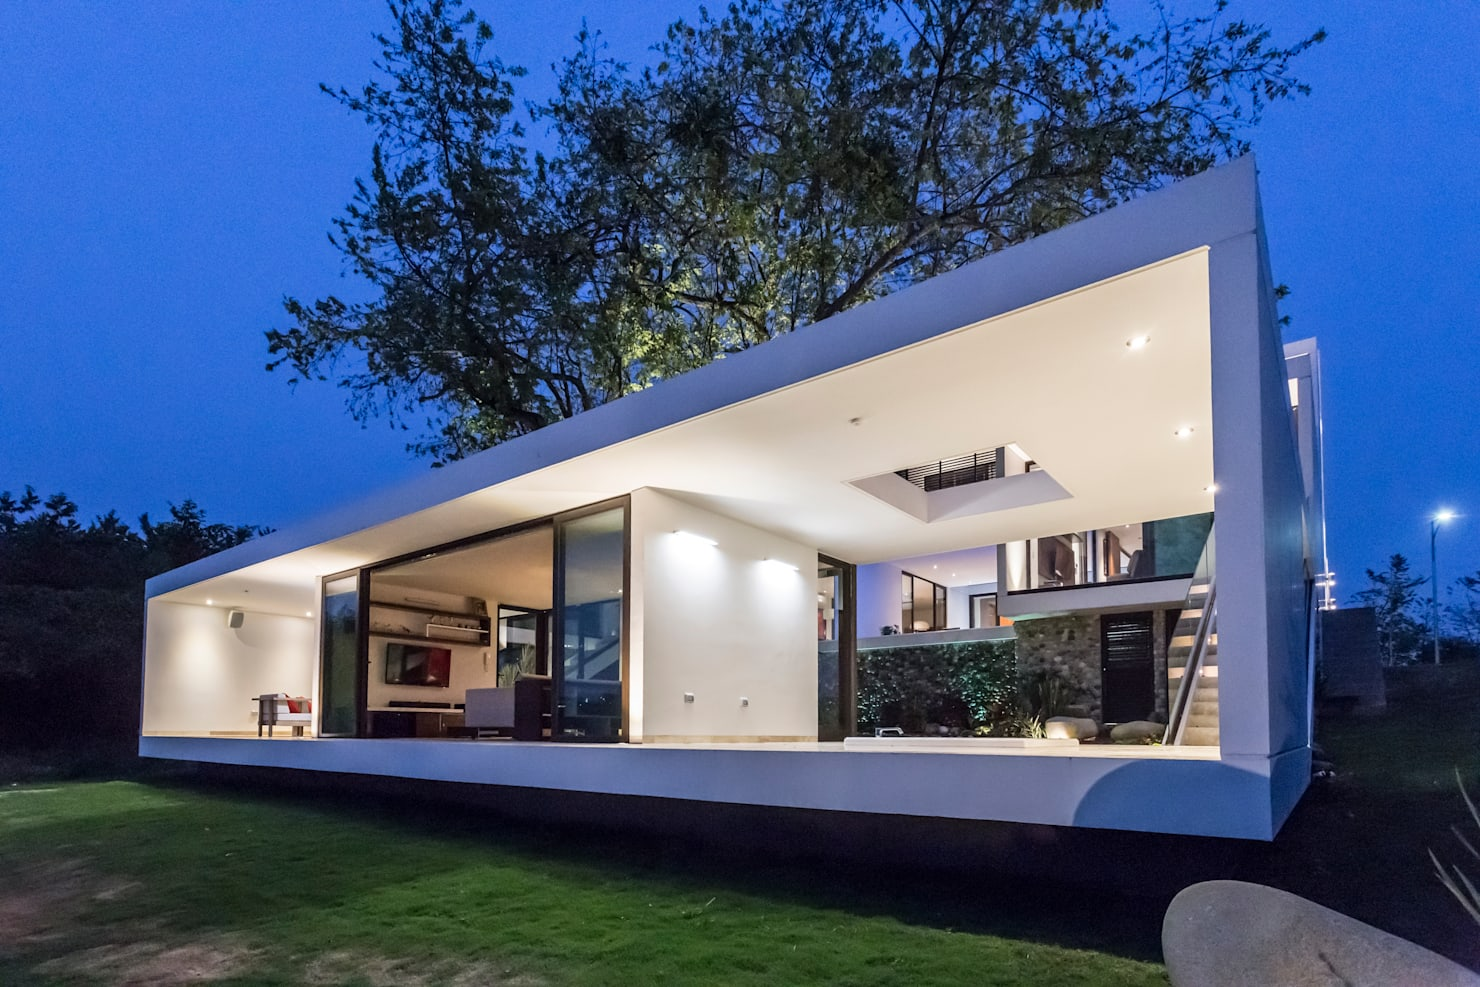 An ultramodern and creative house of 6200 ft²